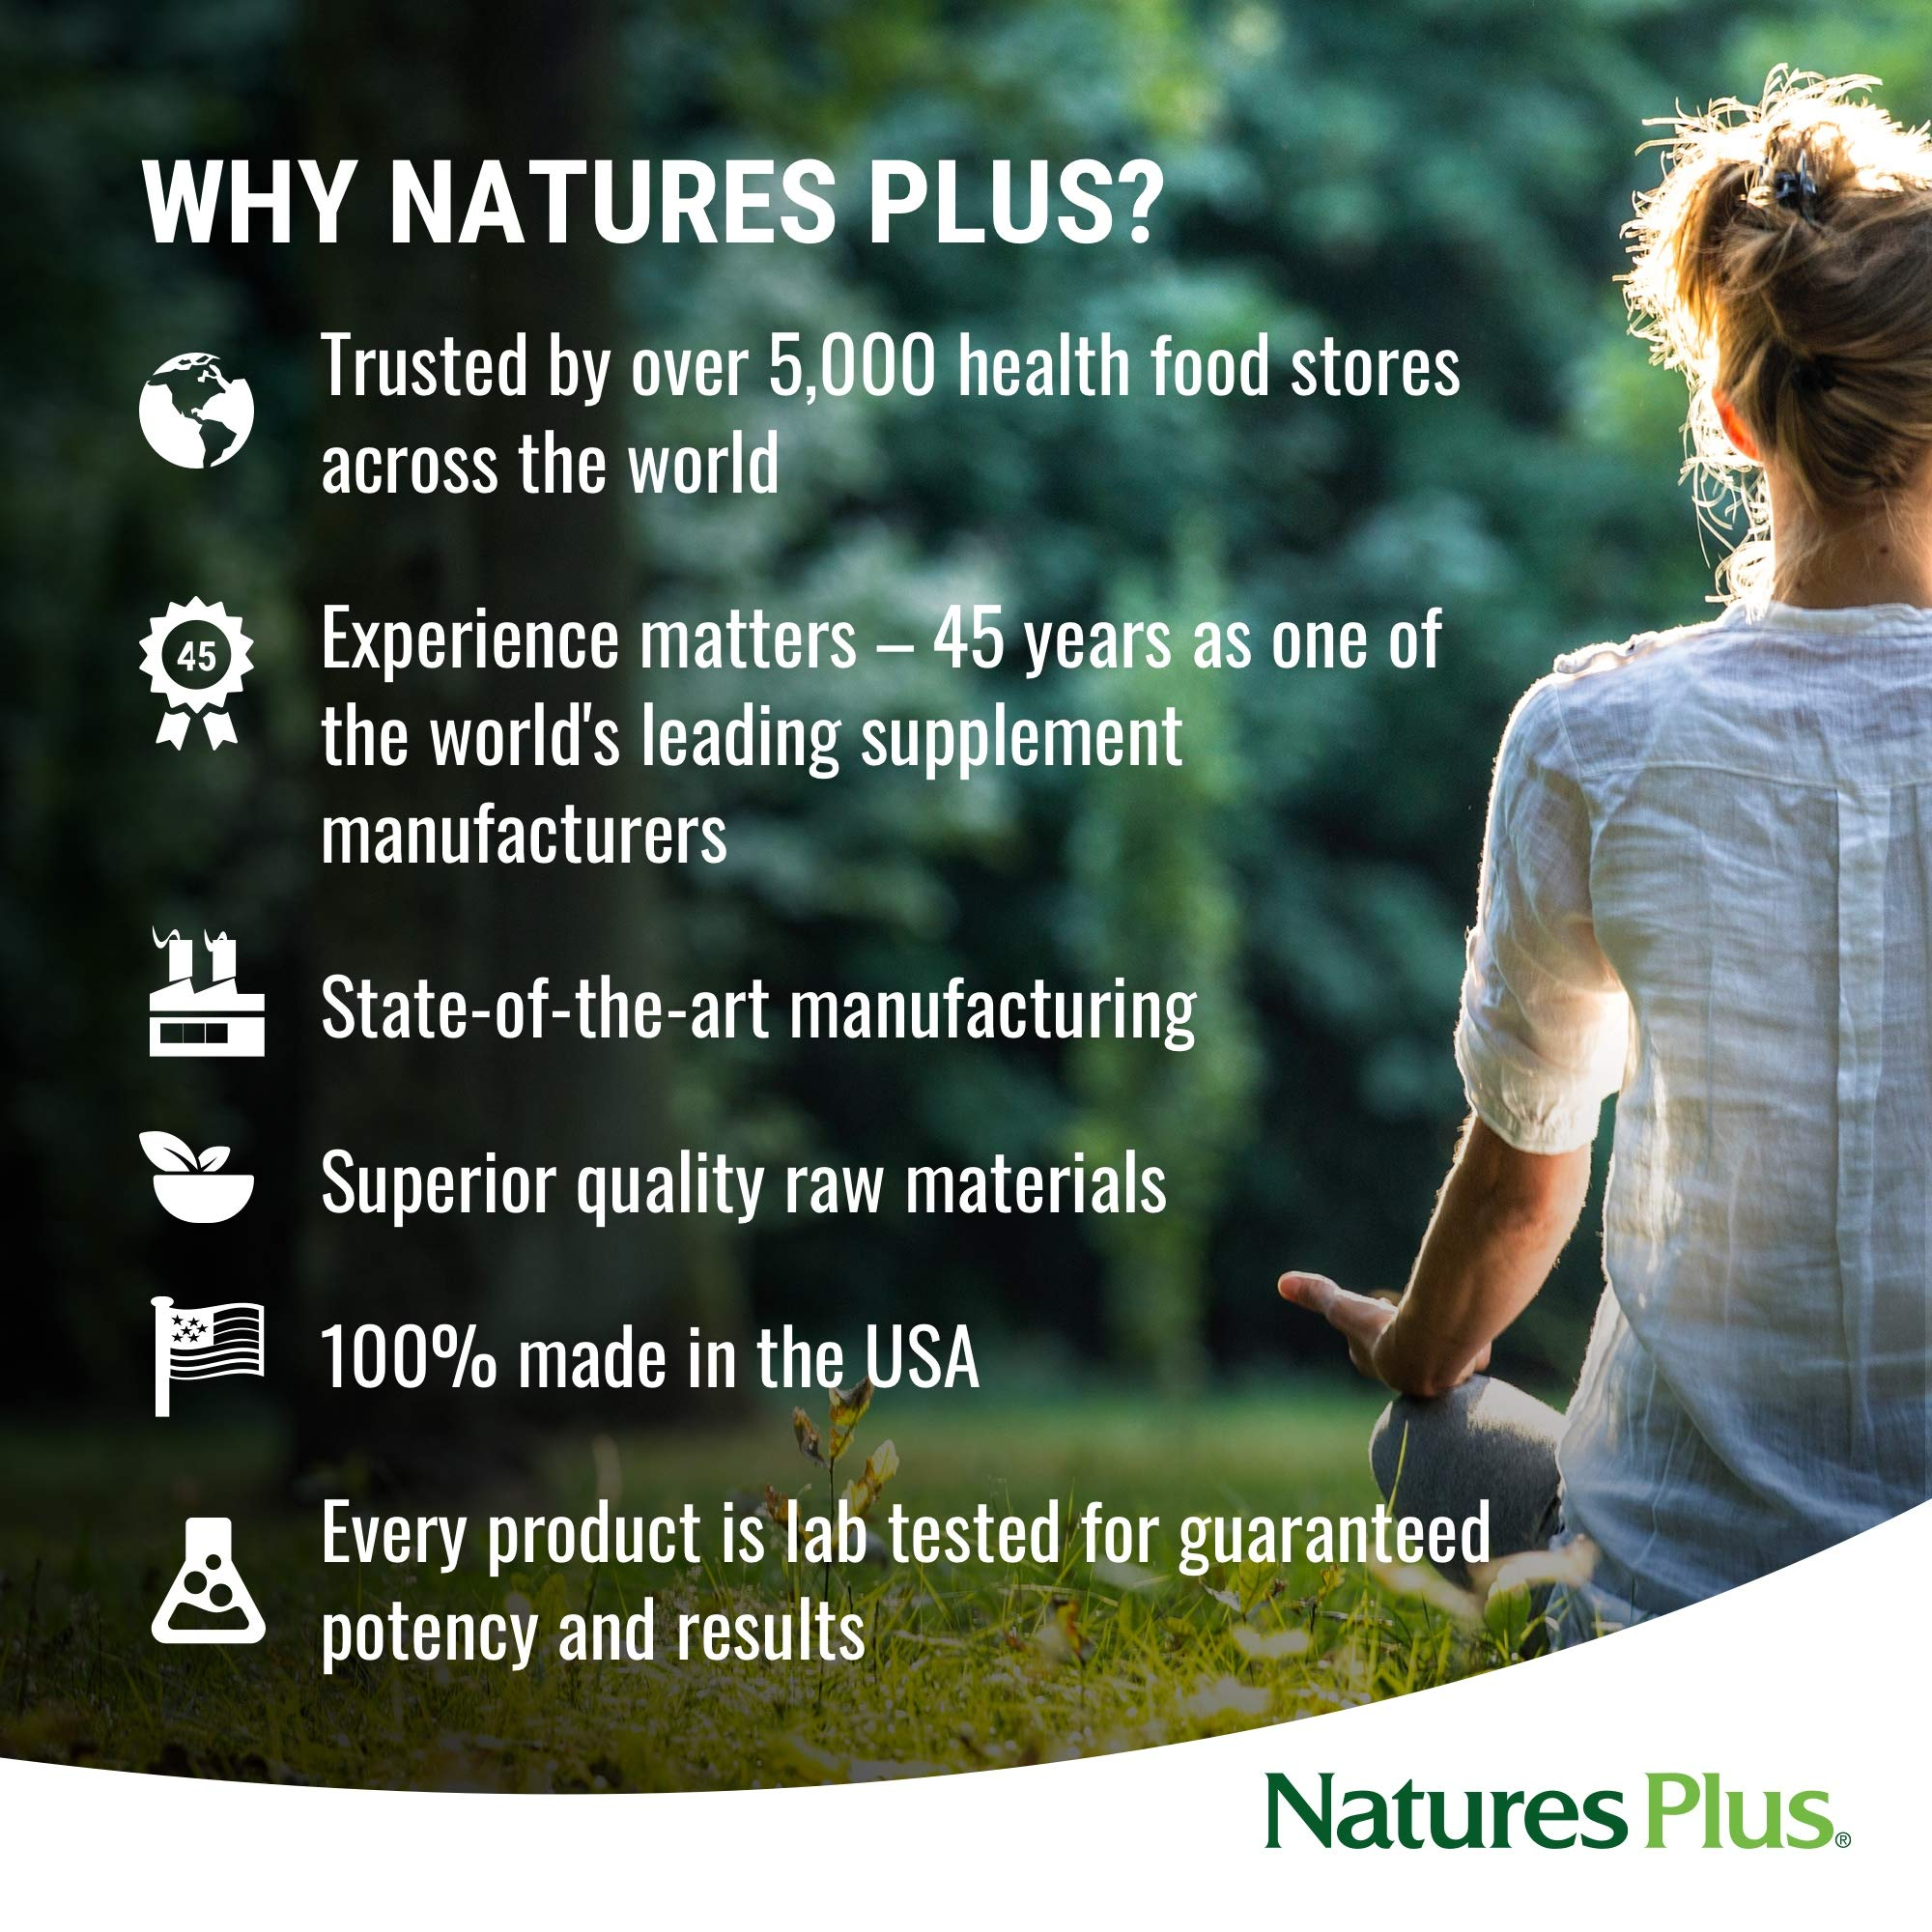 NaturesPlus SPIRU-TEIN Shake - Chocolate - 5 lbs, Spirulina Protein Powder - Plant Based Meal Replacement, Vitamins & Minerals For Energy - Vegetarian, Gluten-Free - 81 Servings by Nature's Plus (Image #5)